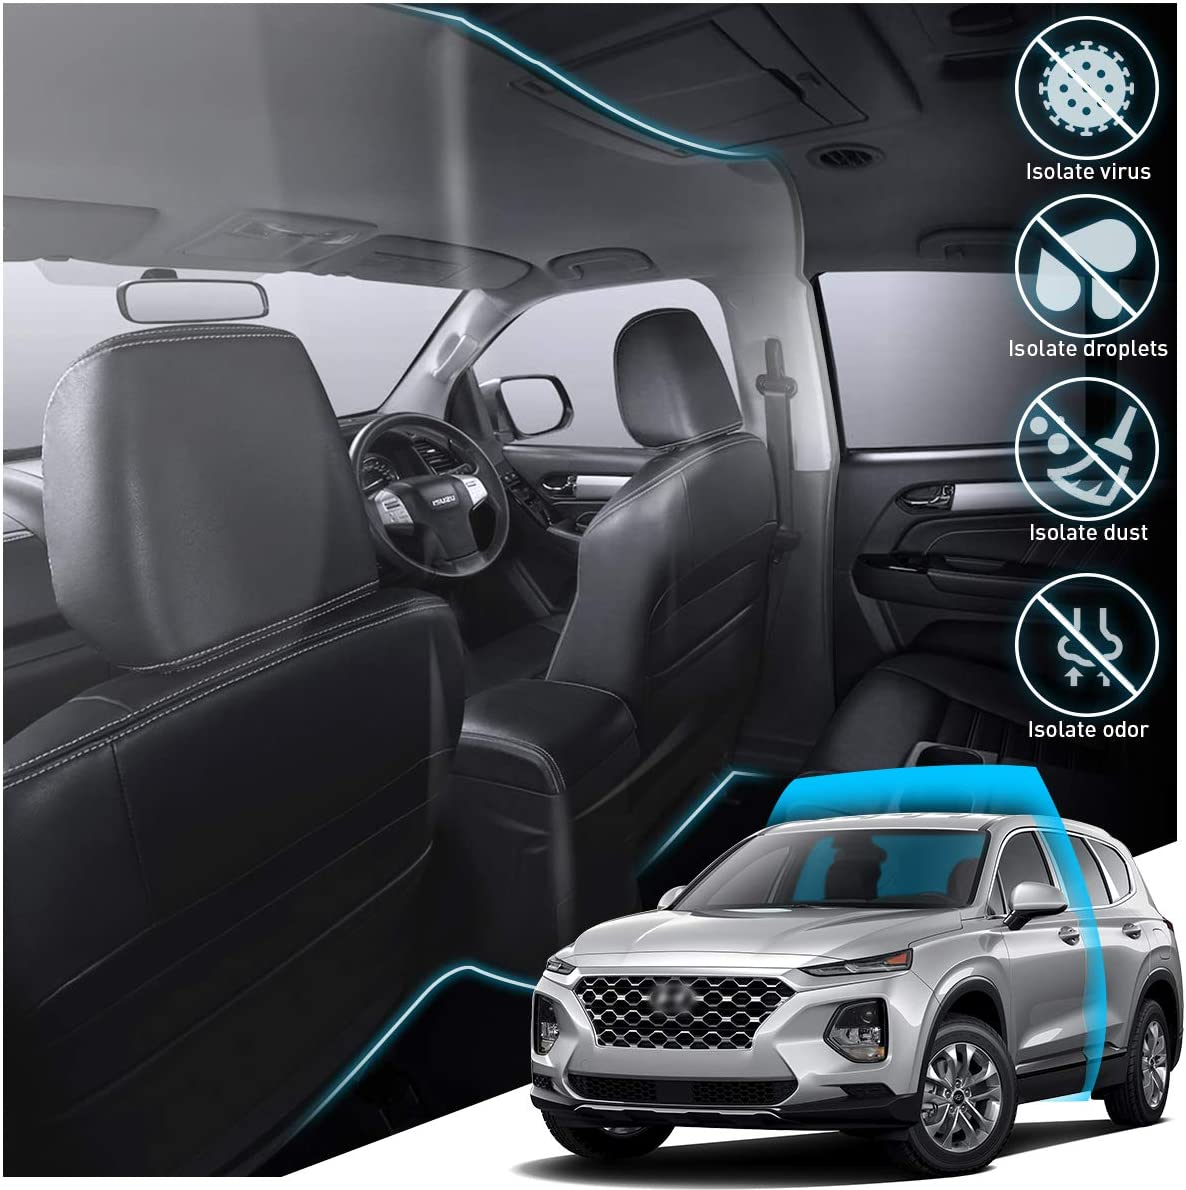 Car Protective Insulation Membrane Curtain PVC Bewteen First Row and Second Row for Taxi//Personal Drivers KFZMAN Transparent Car Taxi Isolation Film Anti-Droplet SUV Size 1.4MX2M